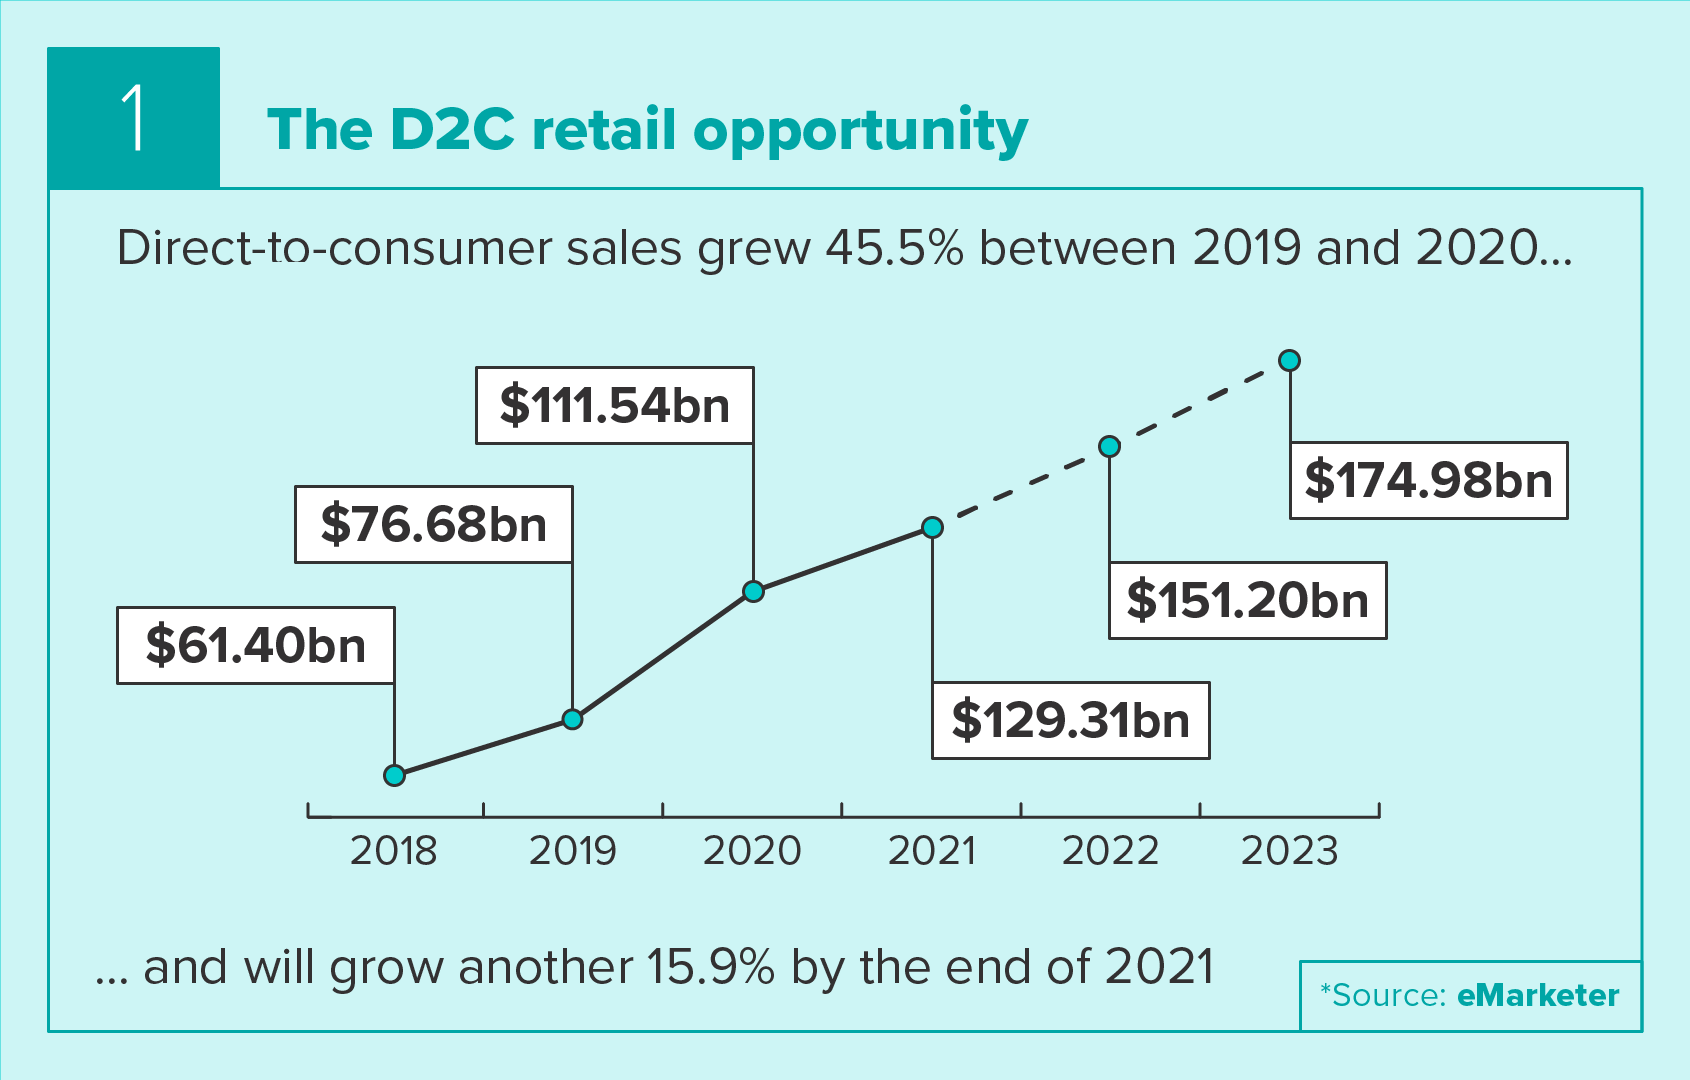 The D2C retail opportunity